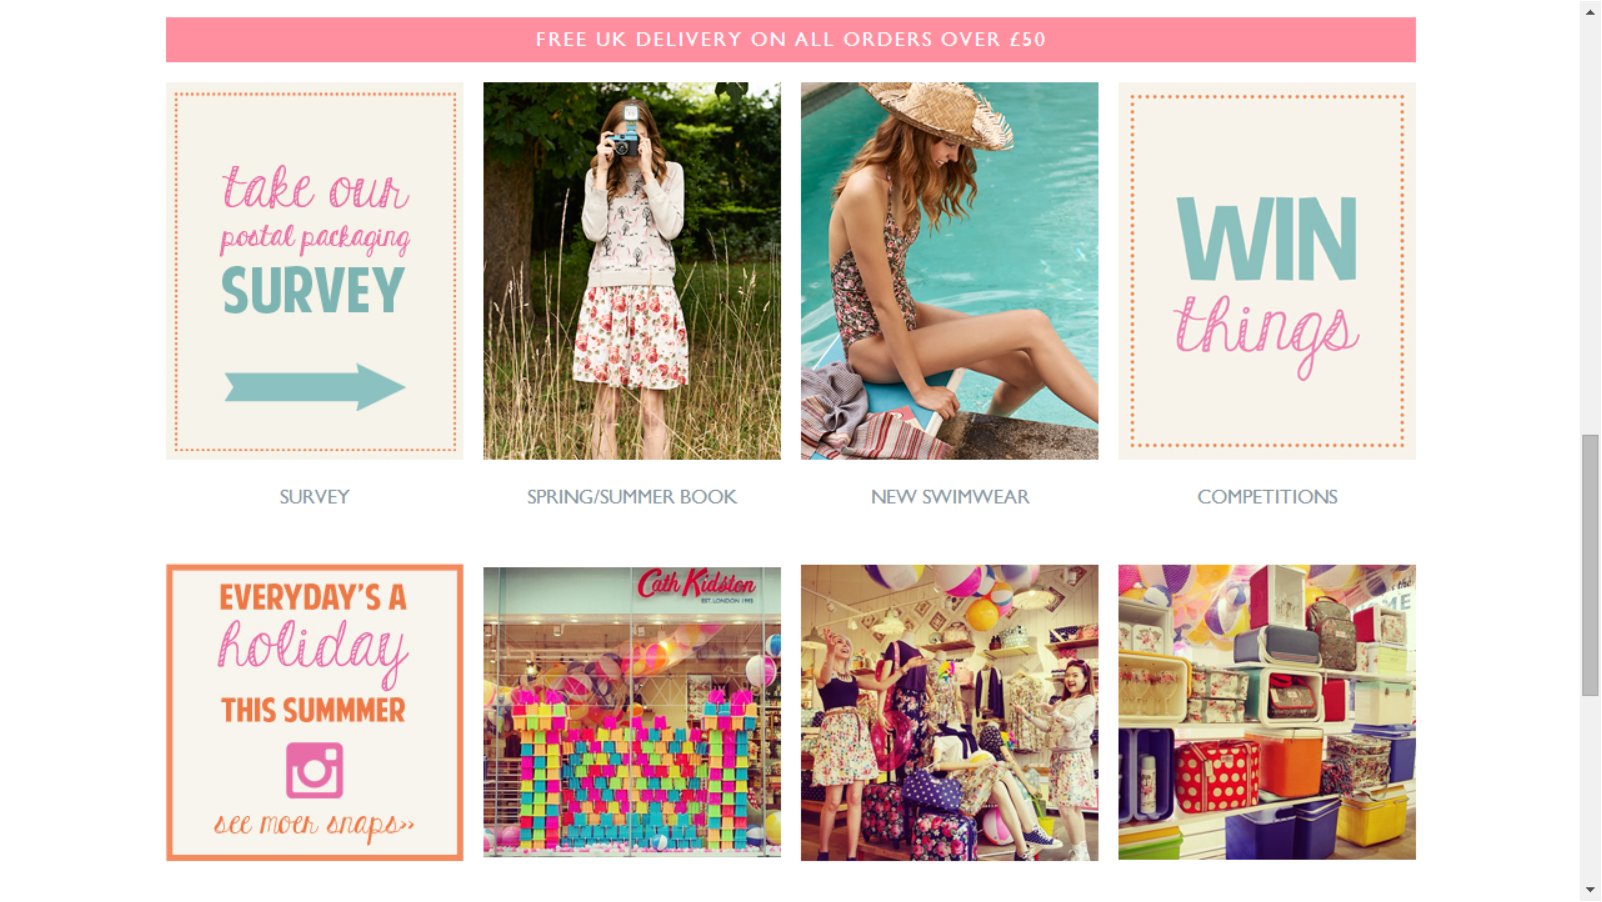 cath-kidston-every-day-holiday